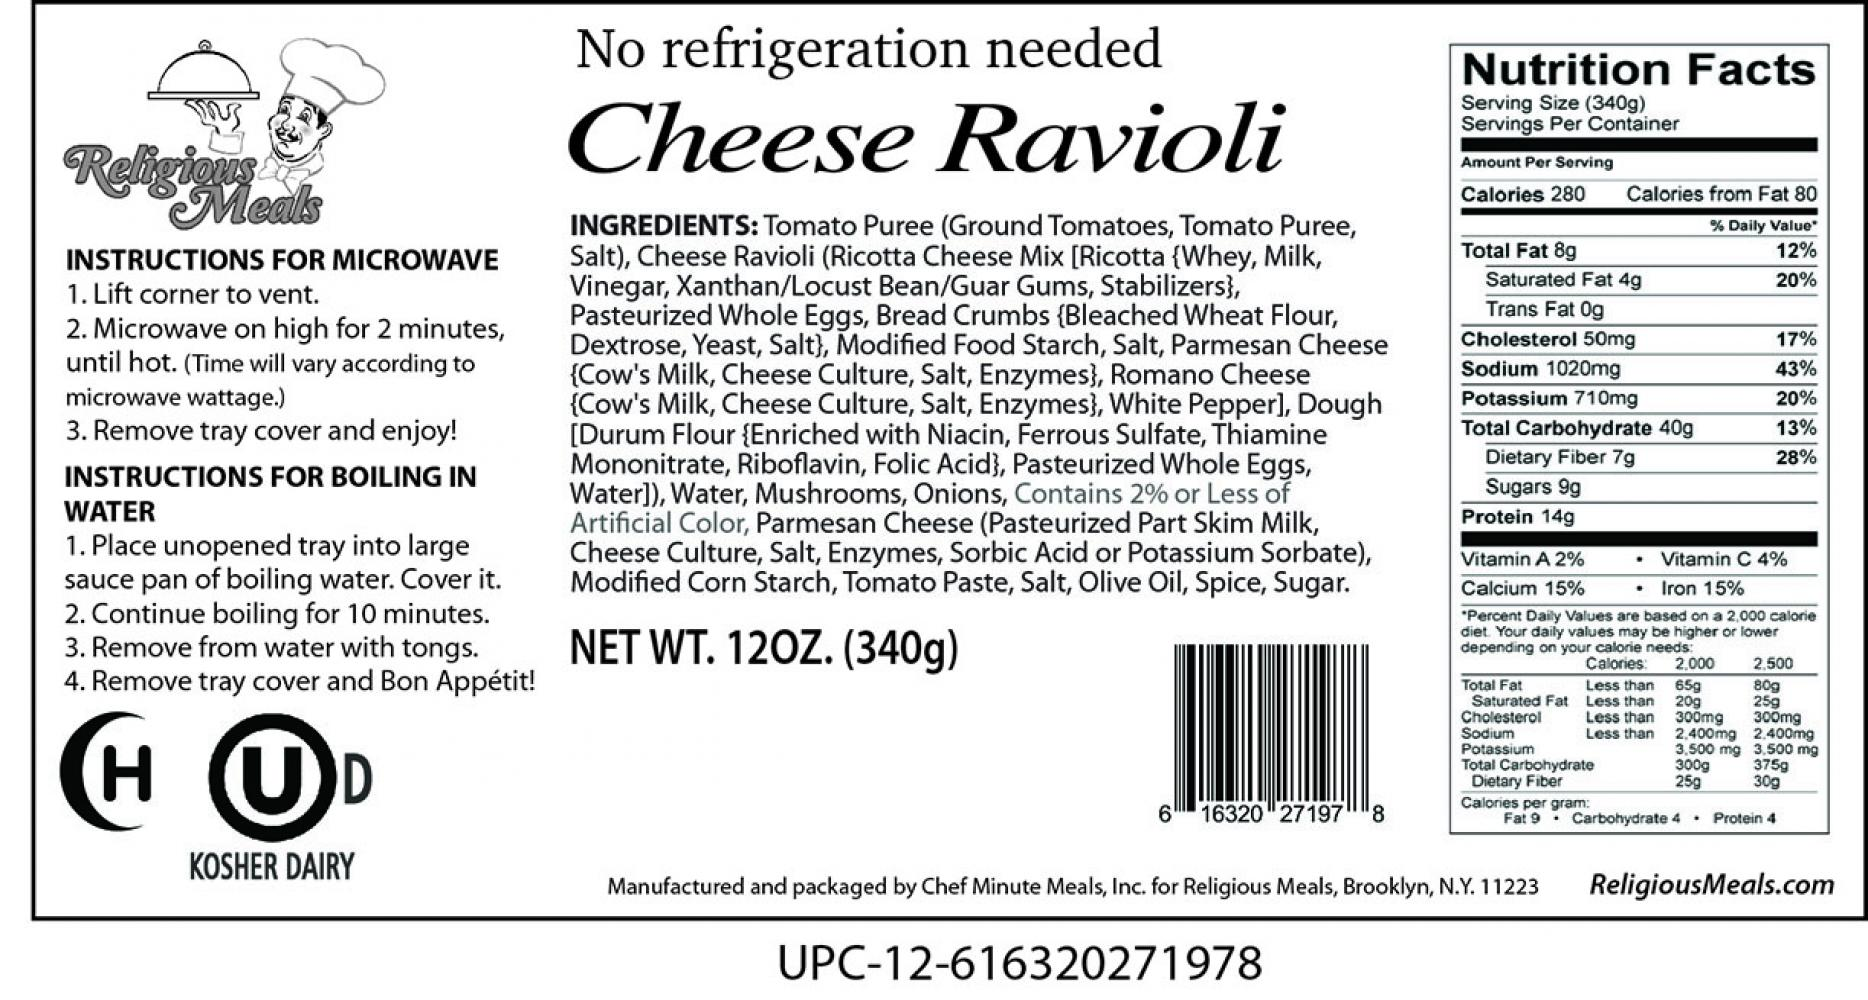 Religious Meals Shelf Stable Meals Cheese Ravioli 12 oz